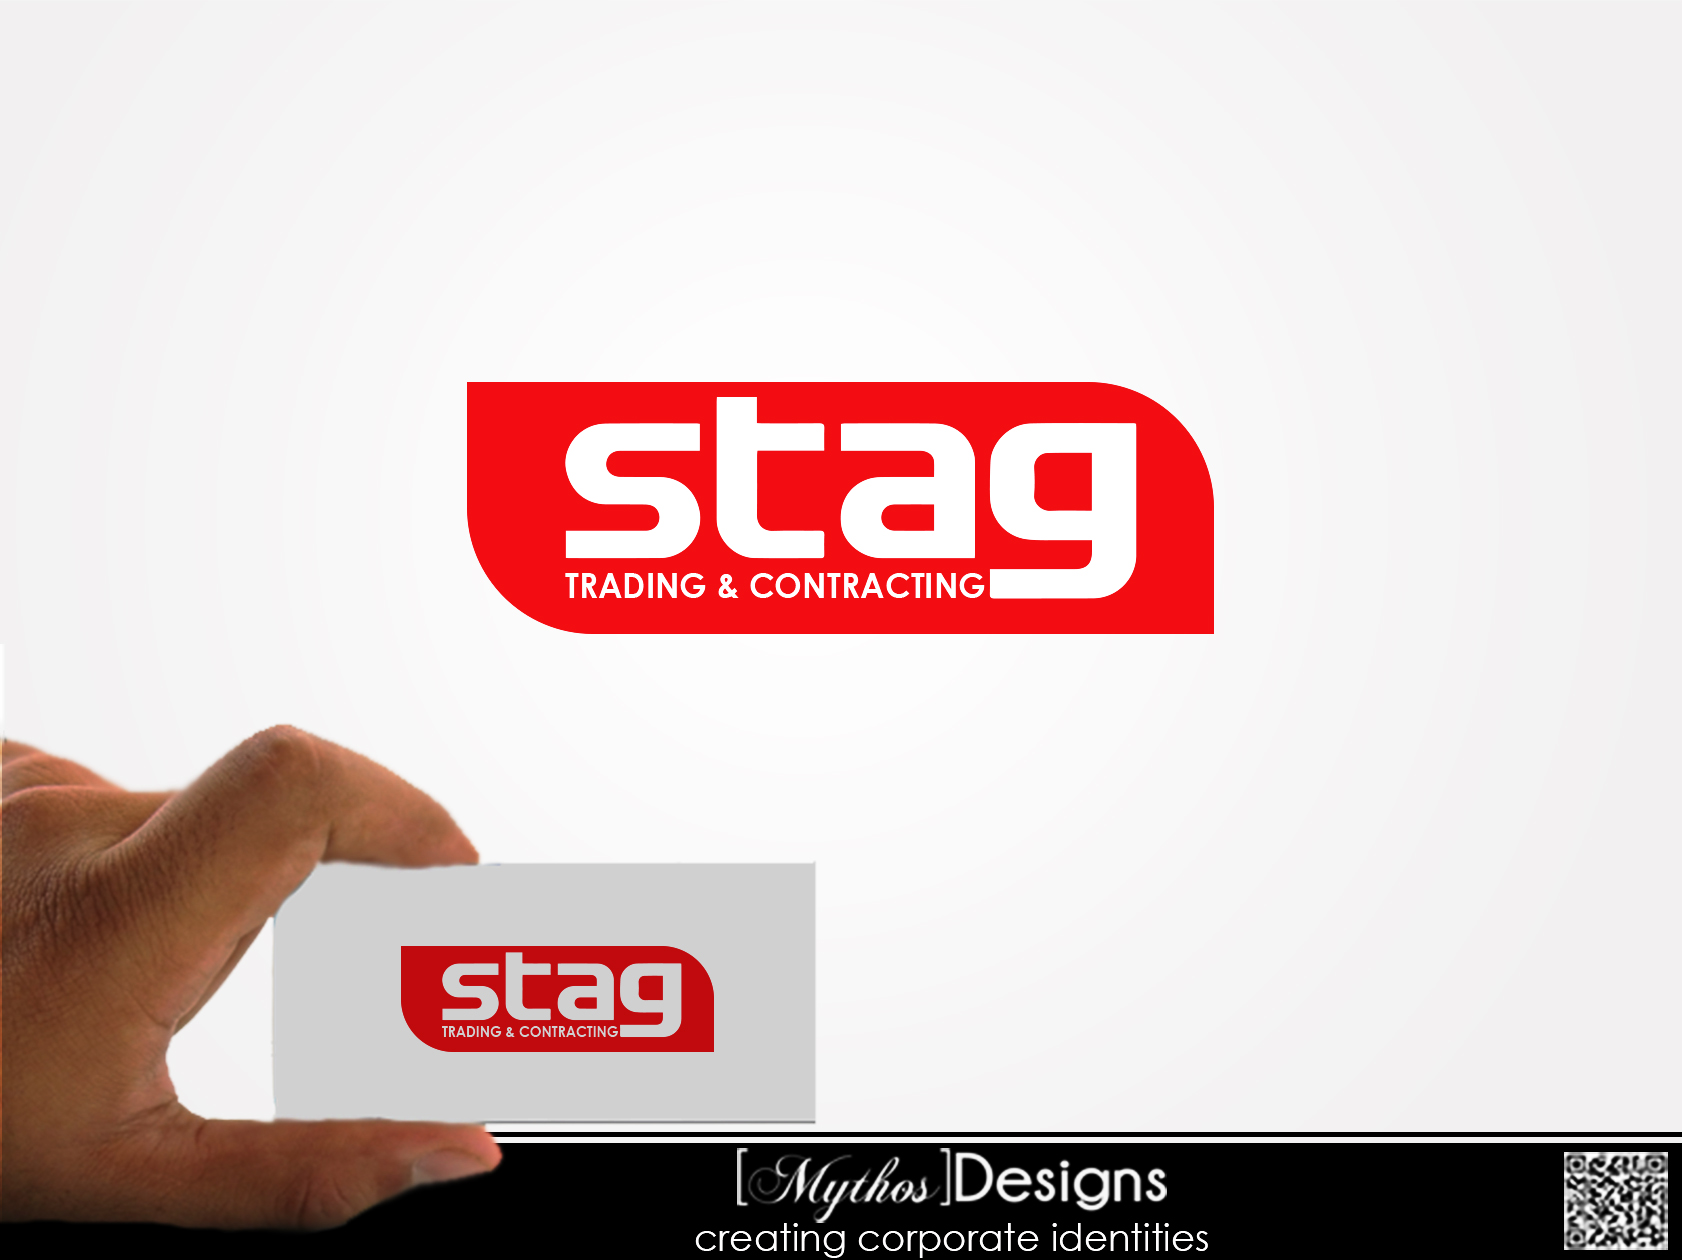 Logo Design by Mythos Designs - Entry No. 36 in the Logo Design Contest Captivating Logo Design for STAG Trading & Contracting.